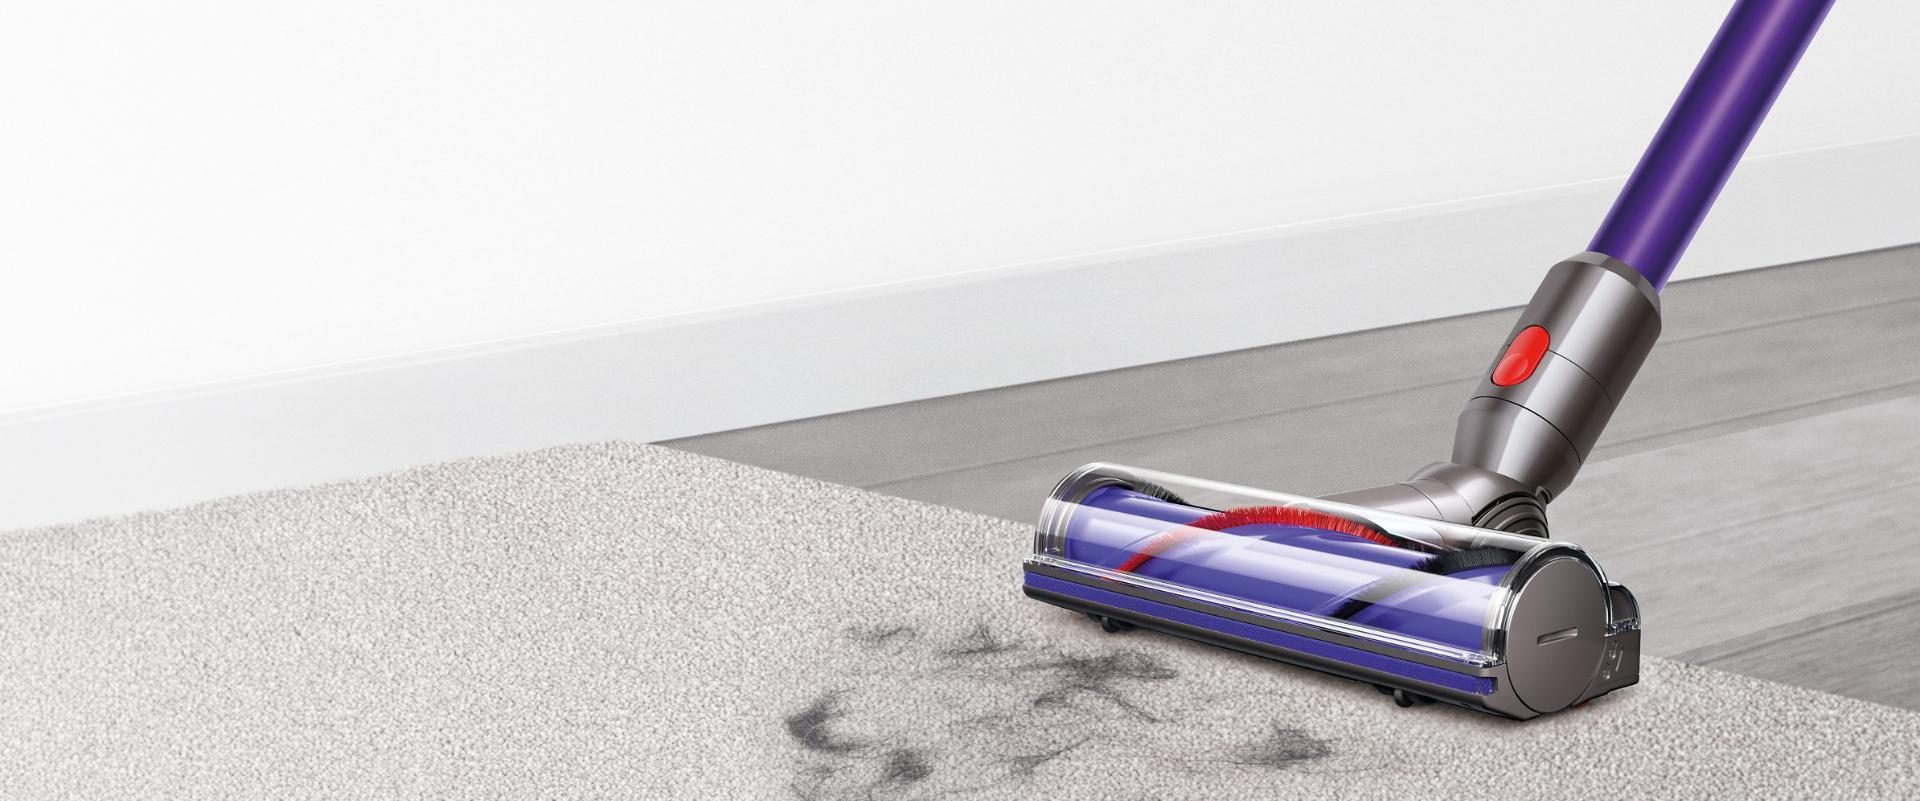 Dyson V7 Animal Cord Free Vacuum Cleaner Dyson India Shop